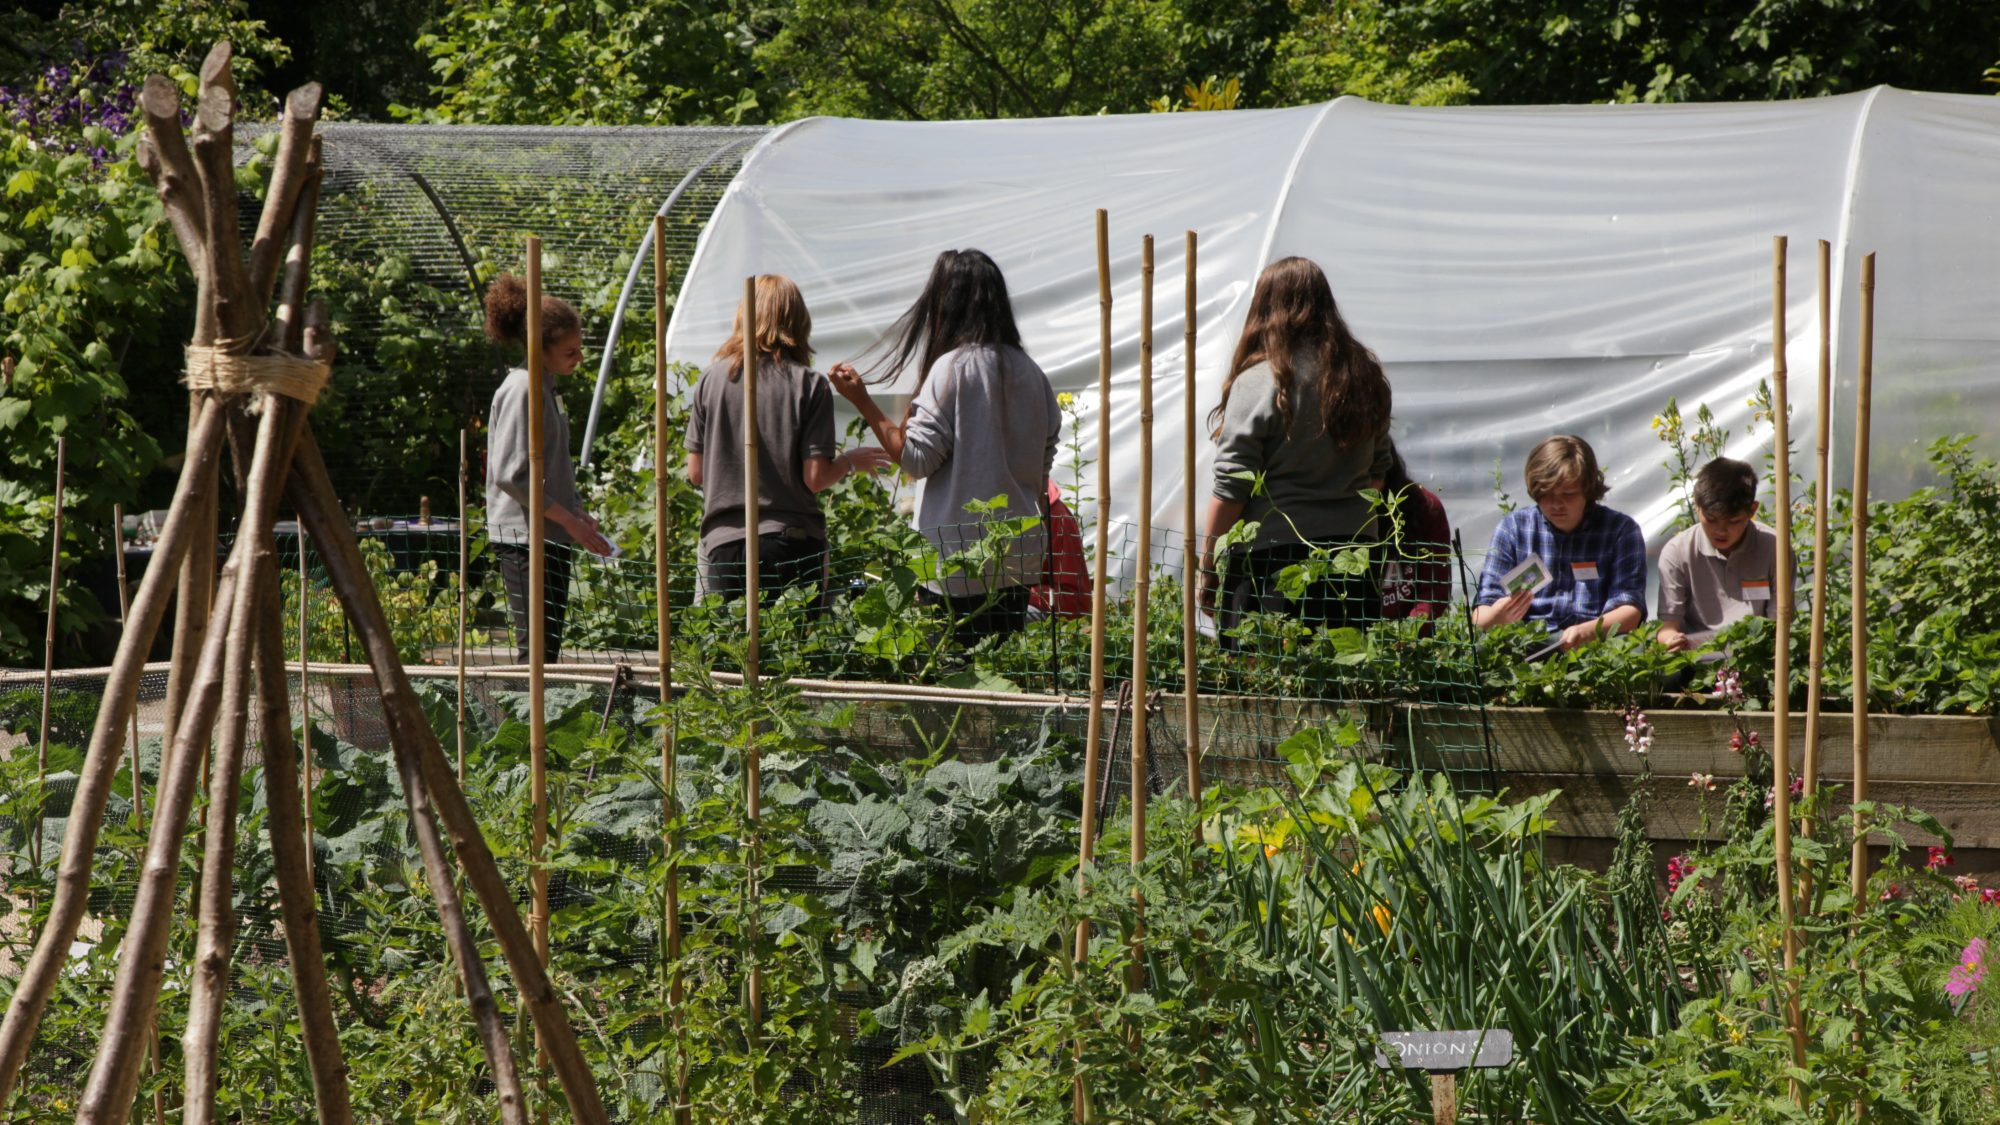 Students in the Schools' Garden with vegetables and polytunnel